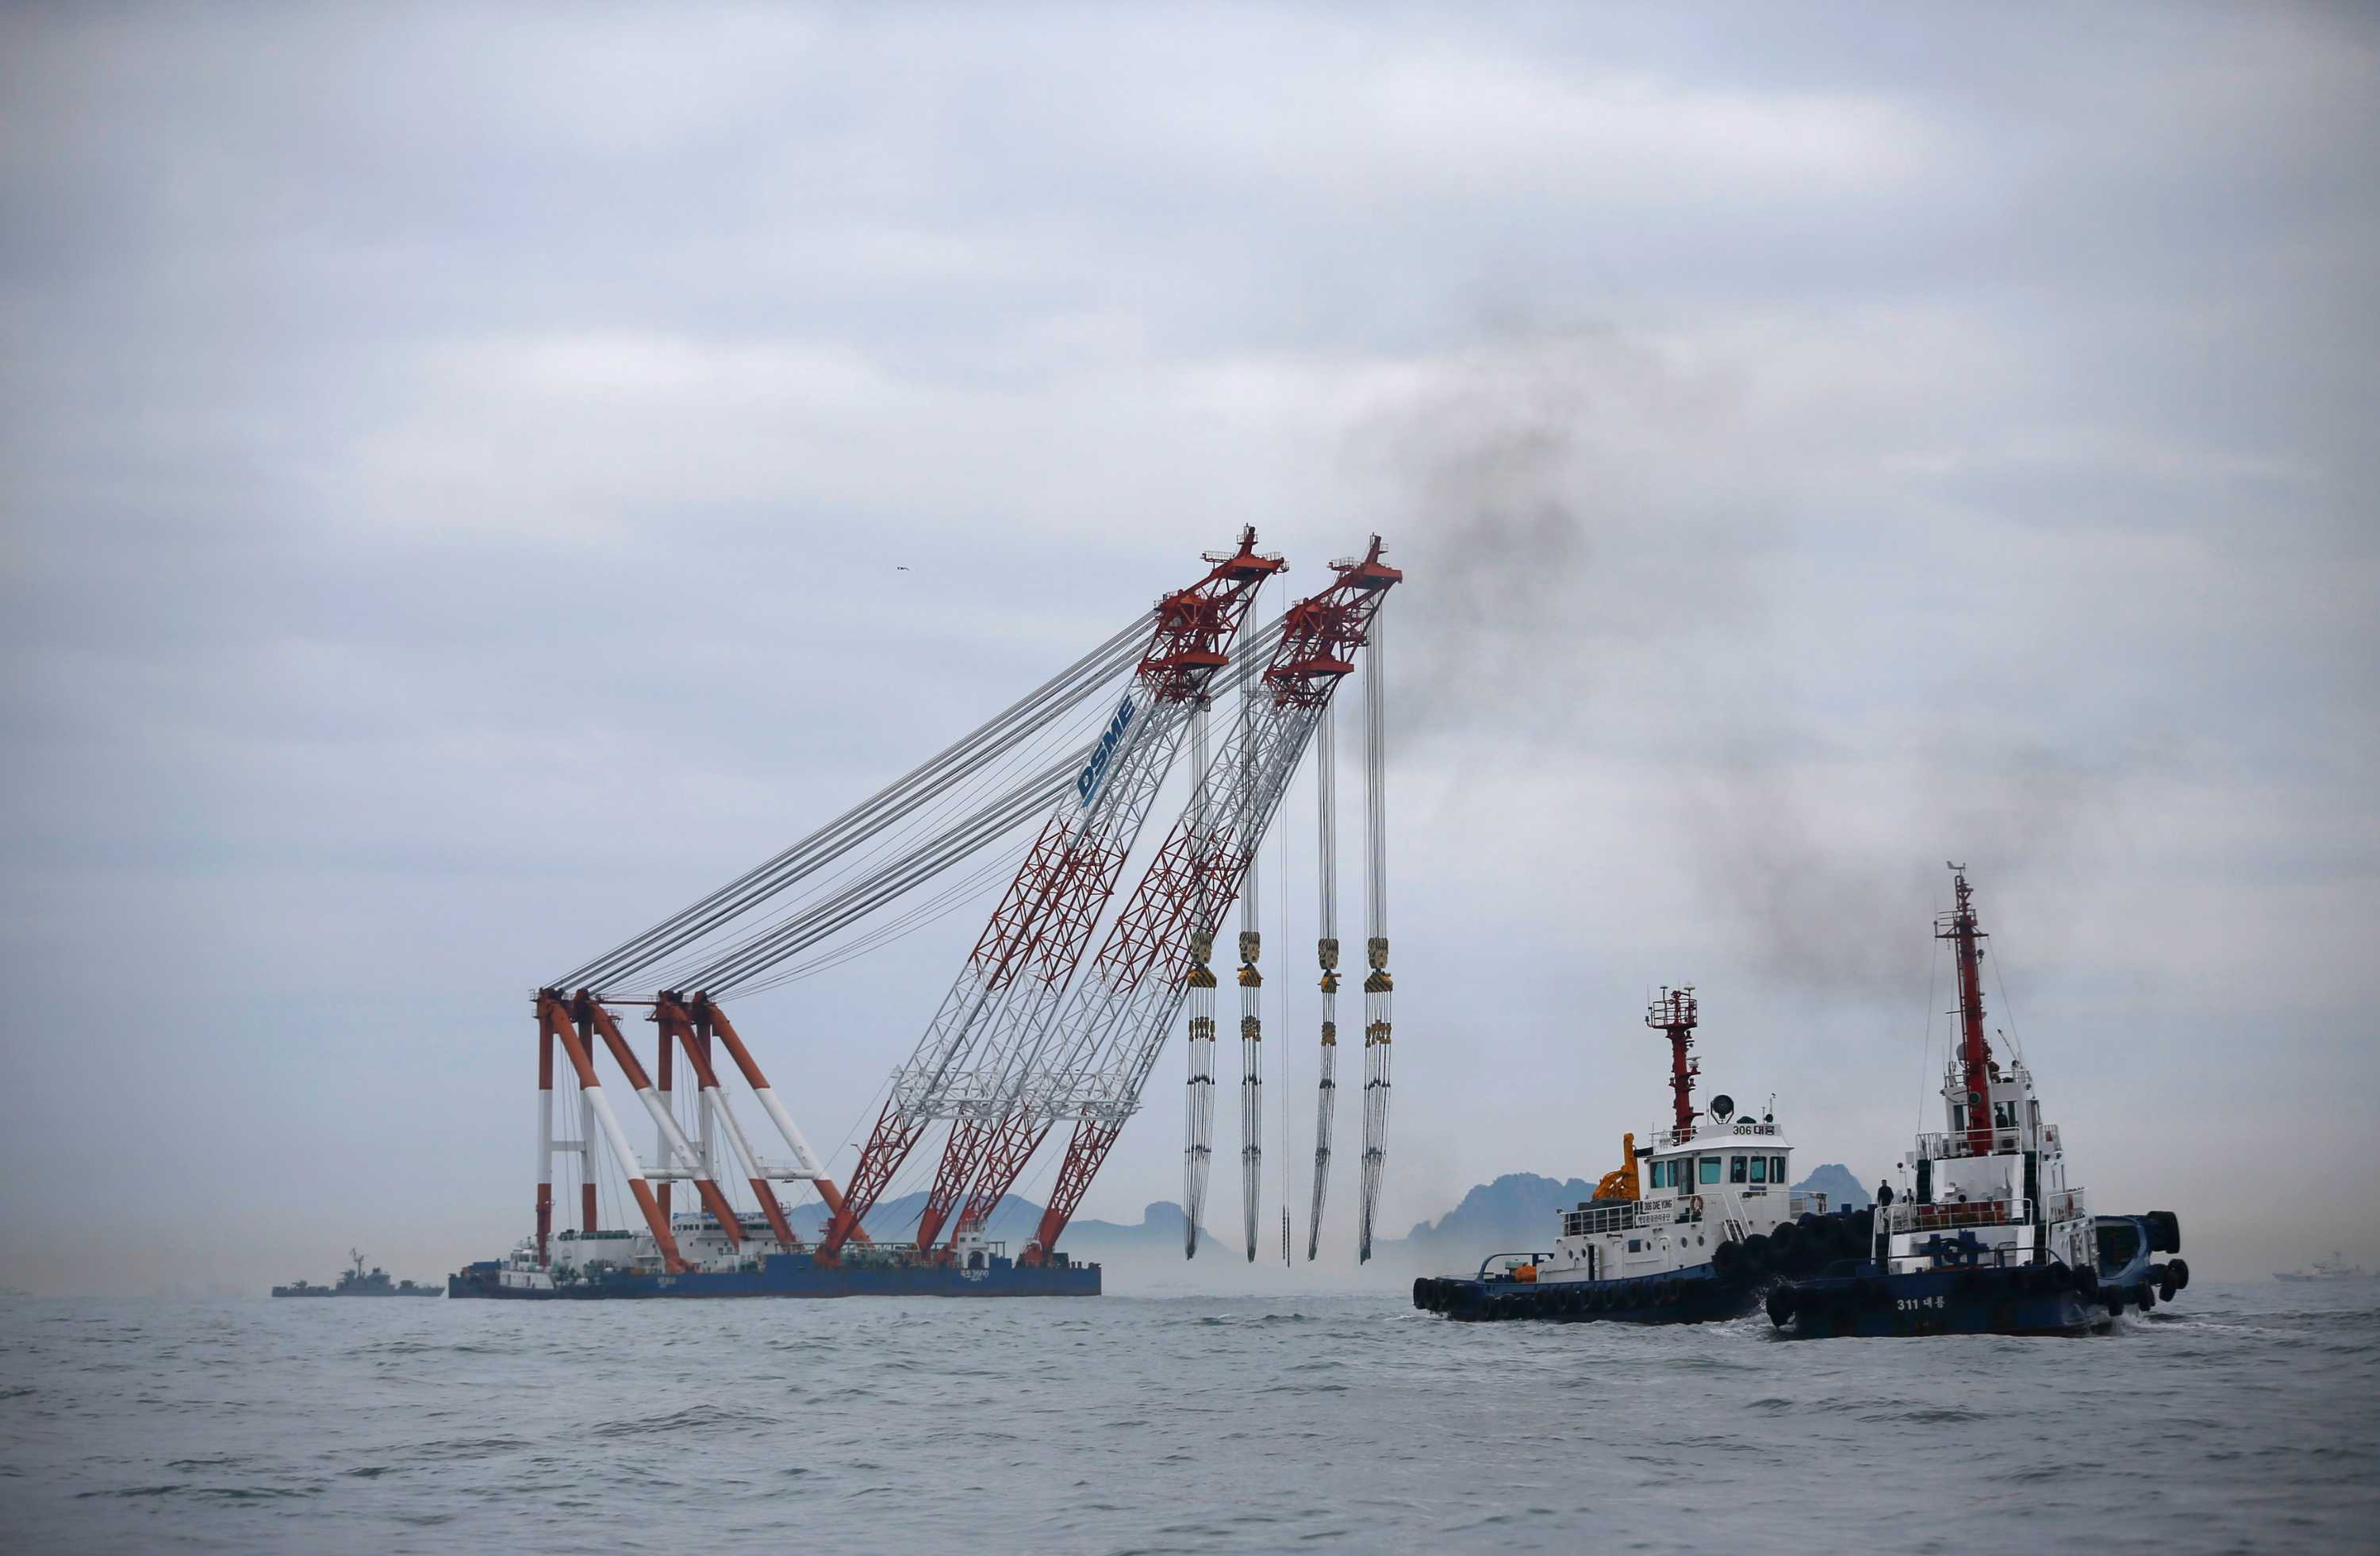 Salvaged S.Korean ferry Sewol to be transported to find cause of accident